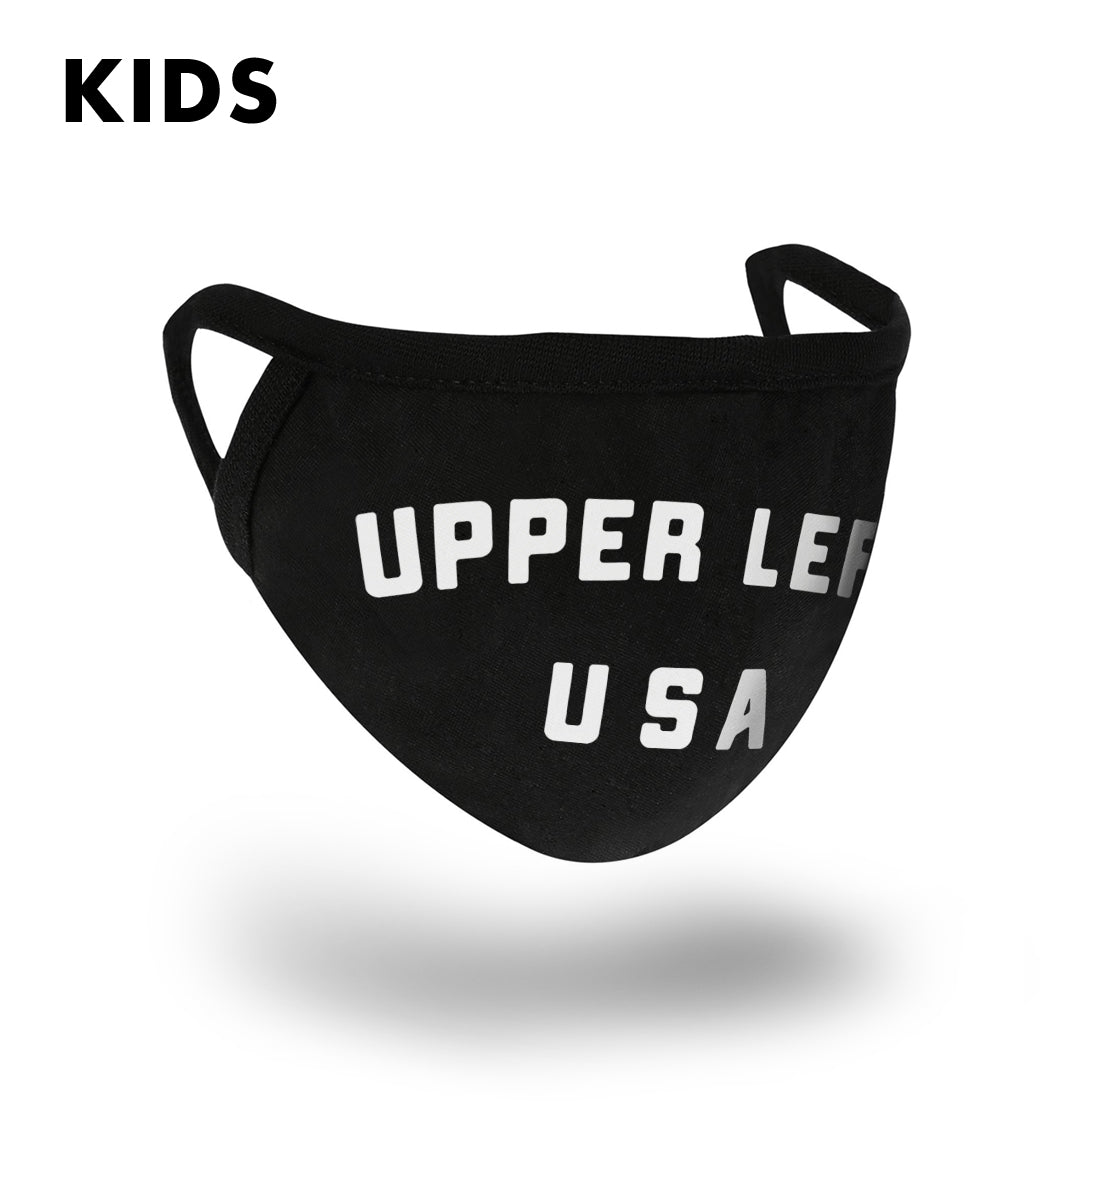 Kids Miller Face Mask